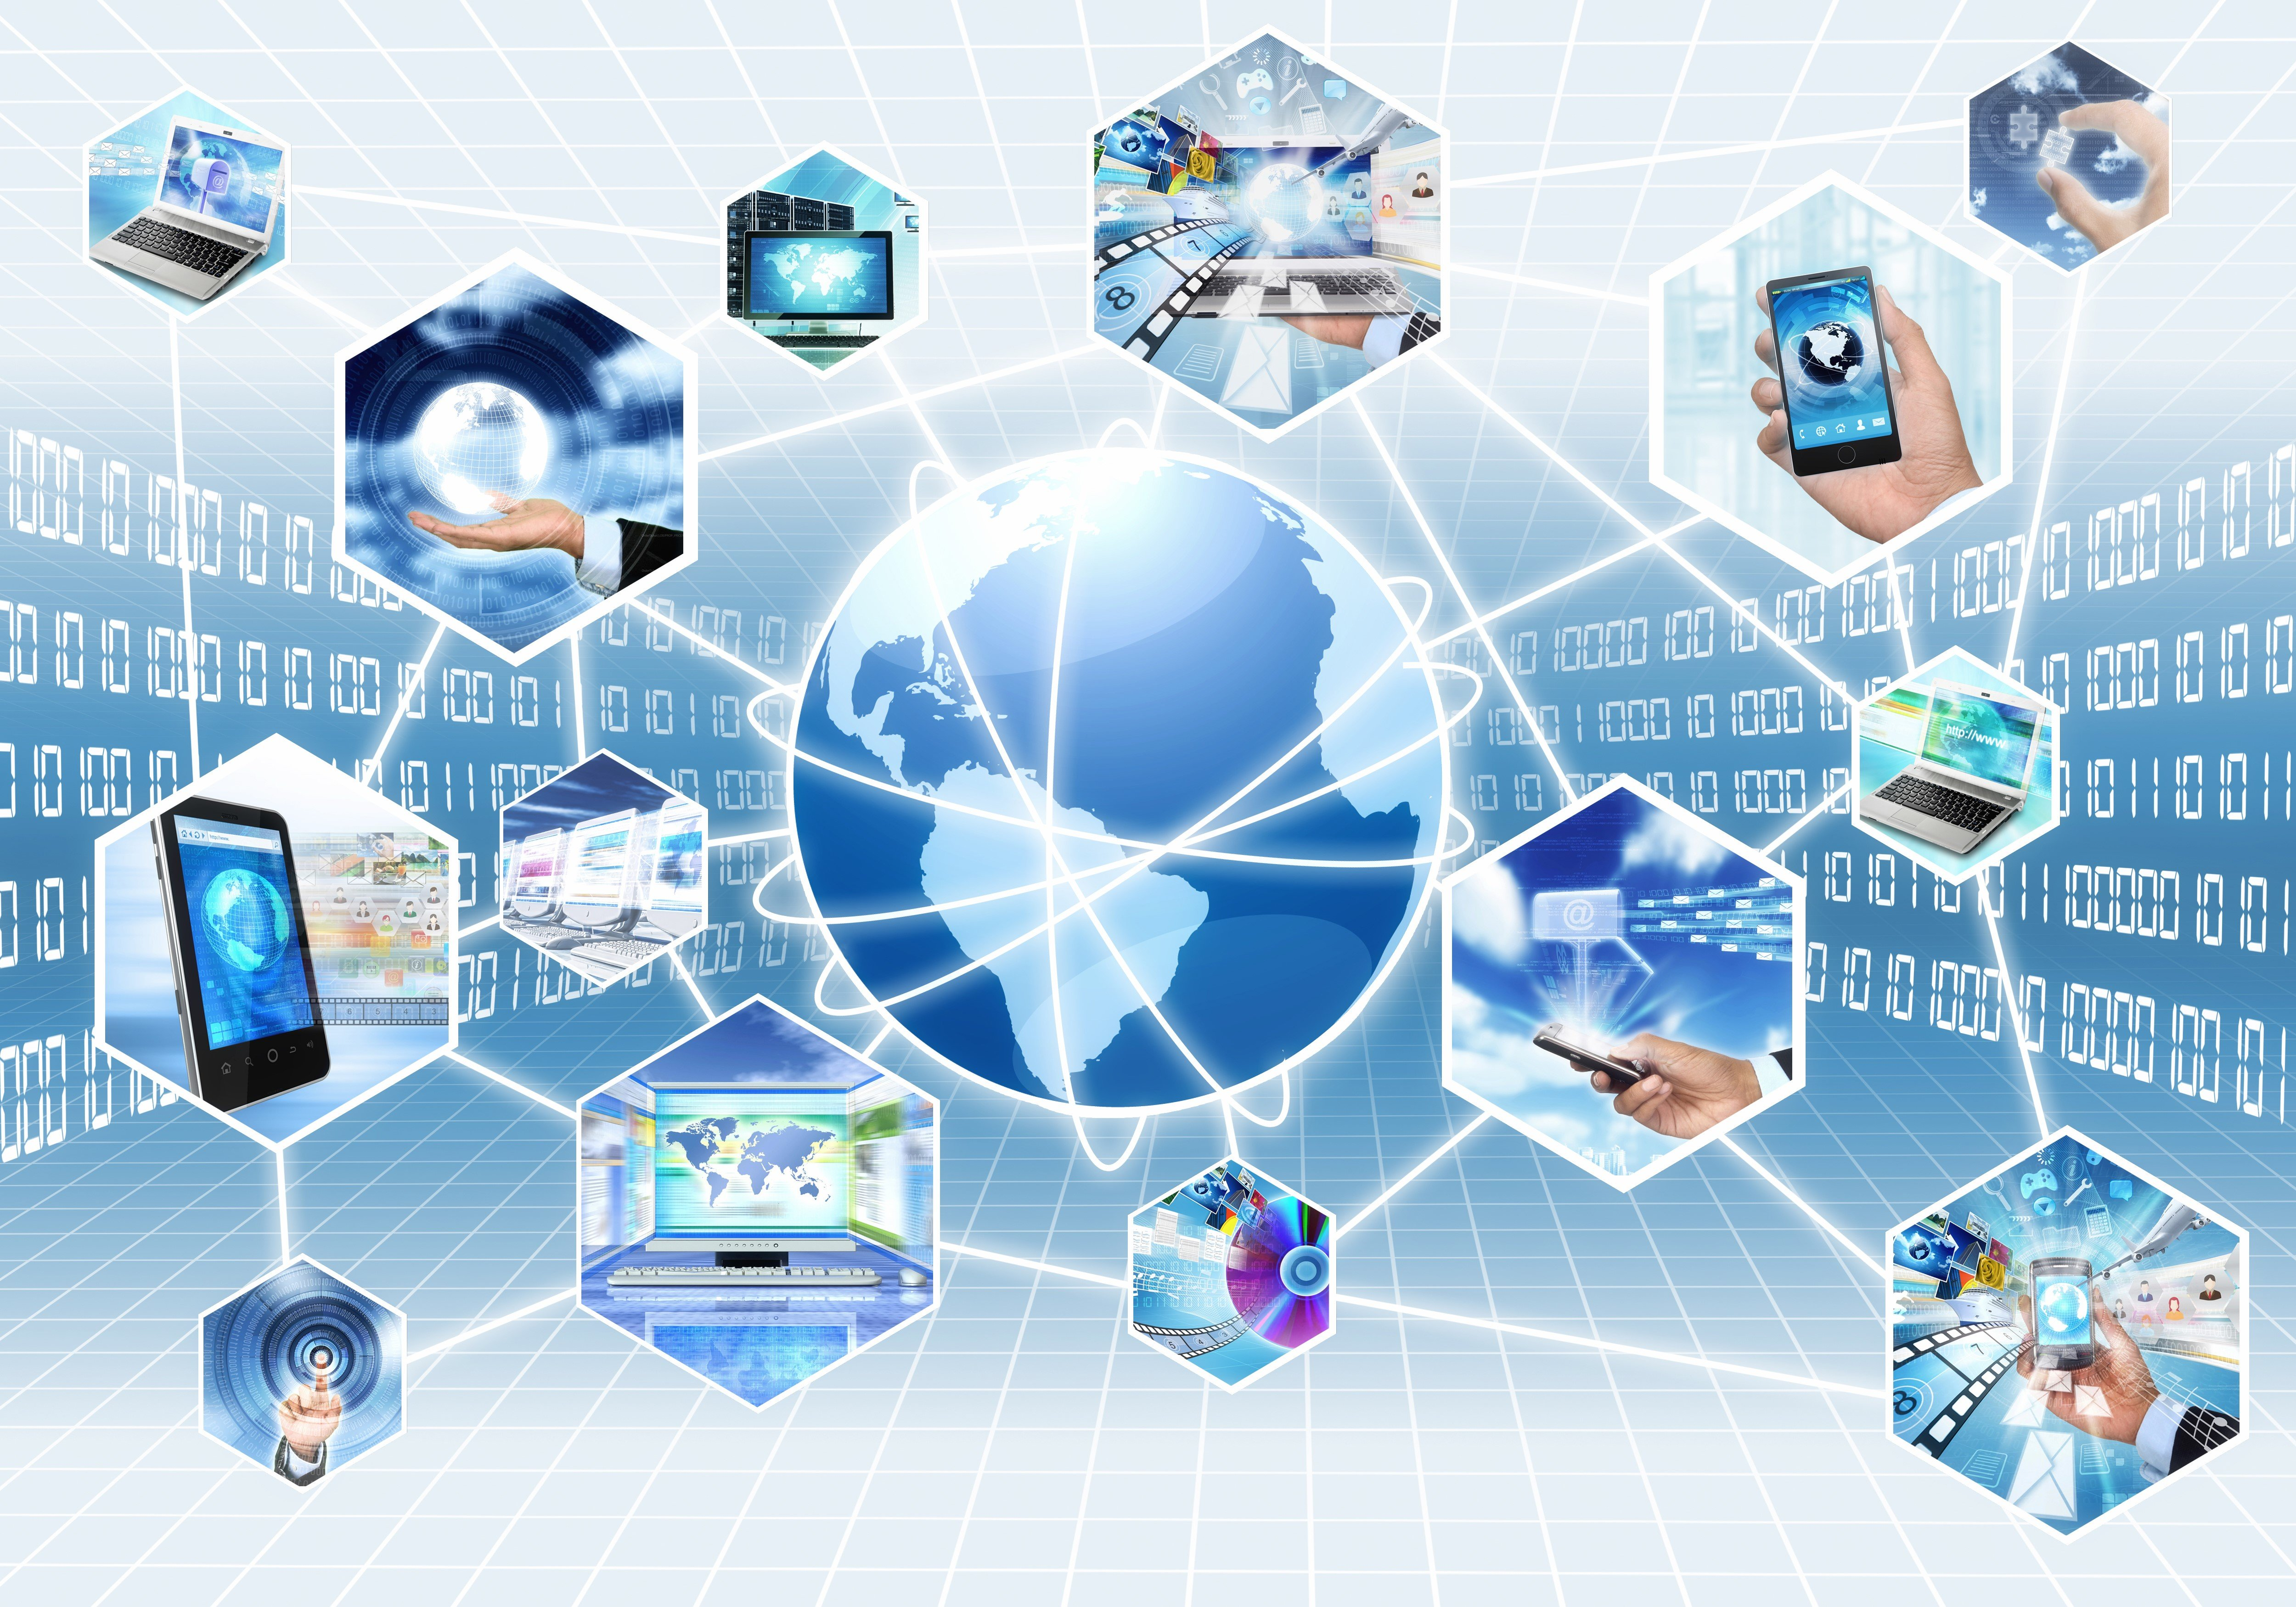 Reliable and low latency communications and networking